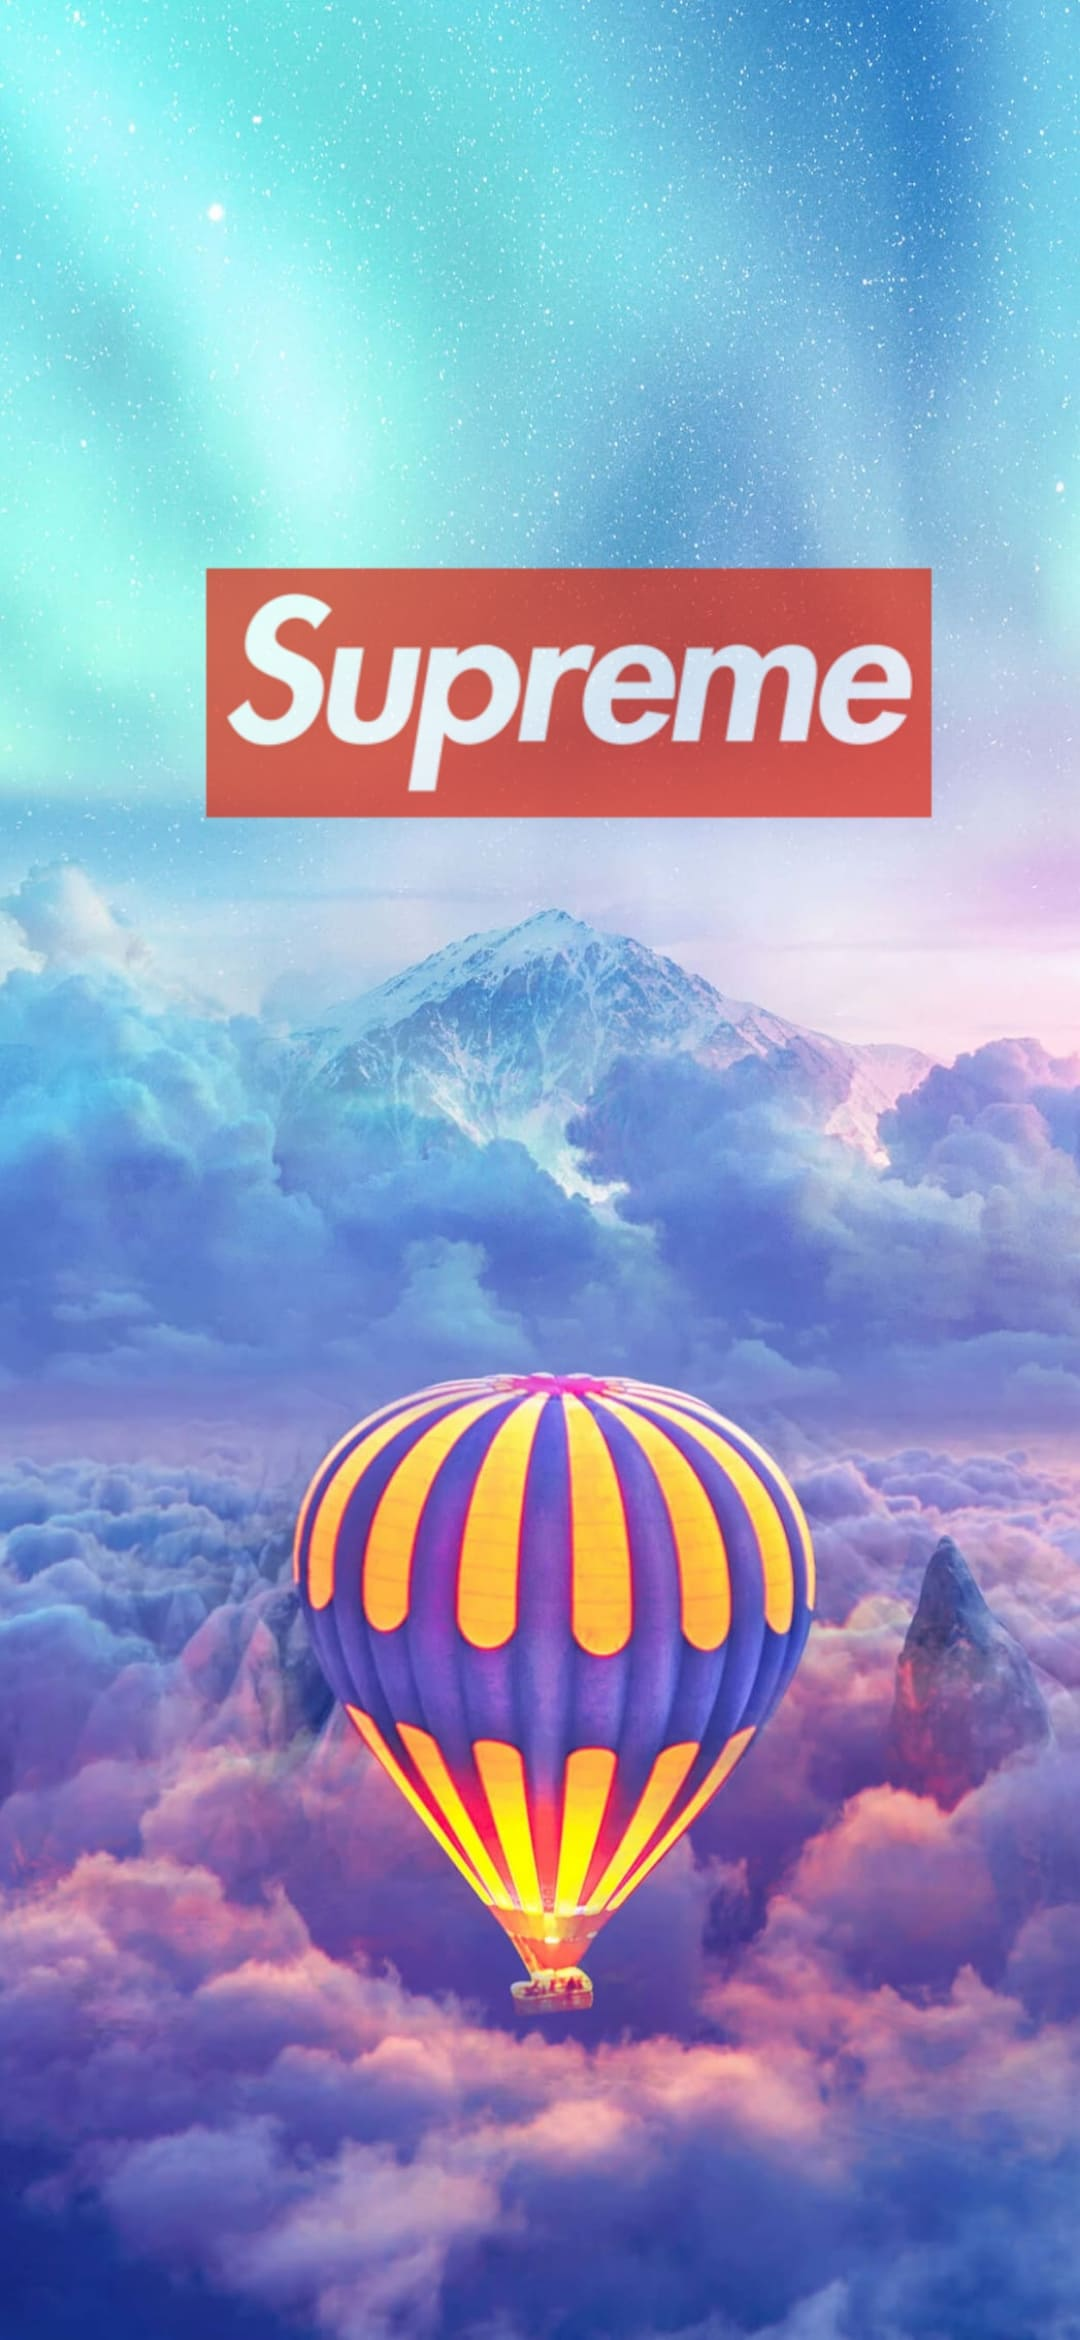 Supreme Iphone 11 Pro Max Wallpaper Supreme Wallpapers